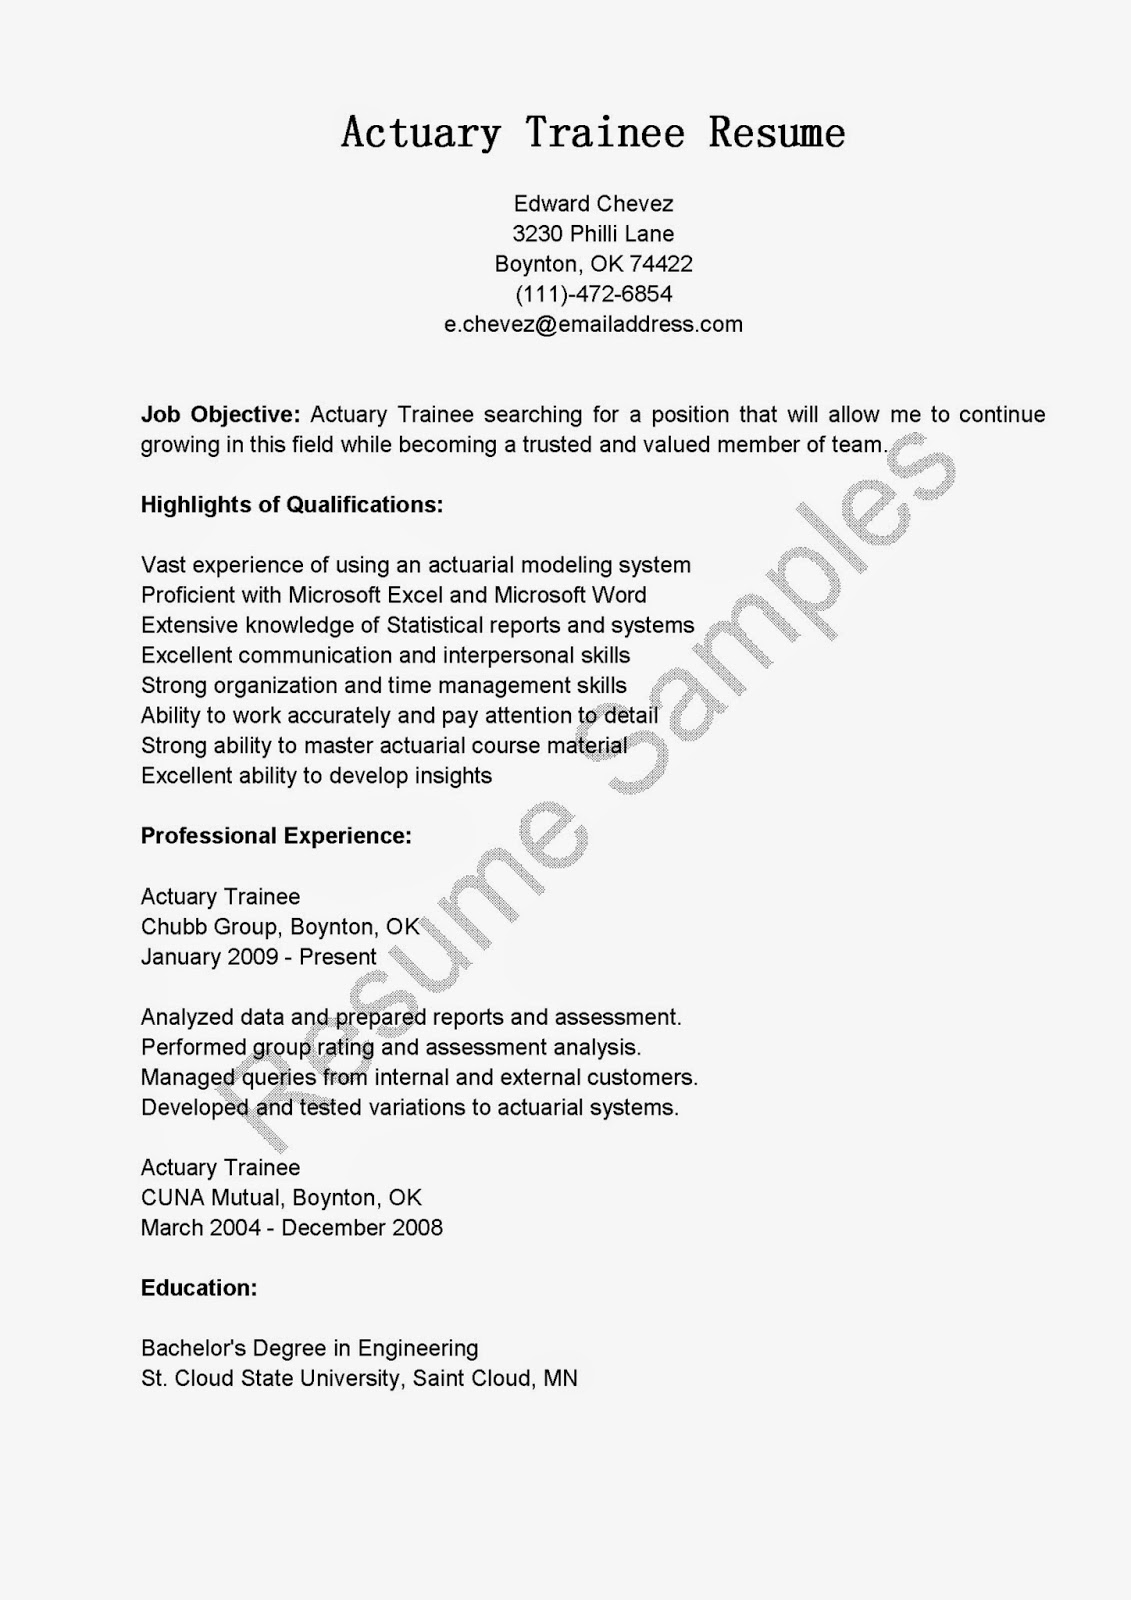 sample actuarial resume resume samples actuary trainee sample entry level